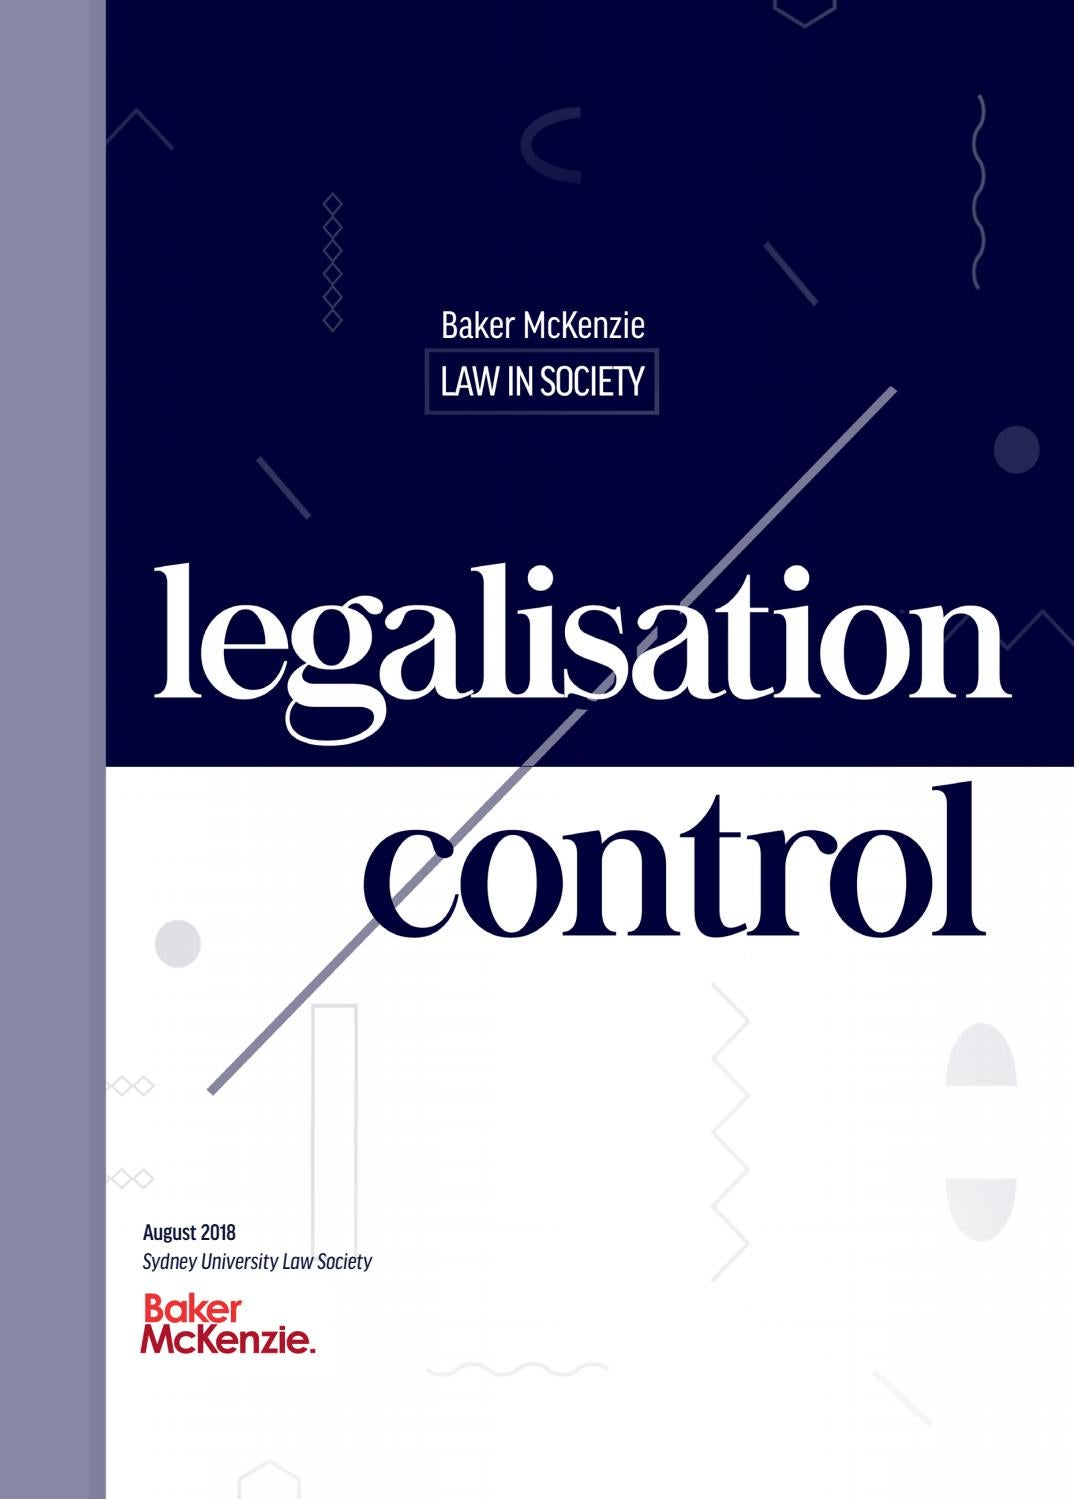 Baker McKenzie Law in Society 2018: Legalisation and Control by Sydney  University Law Society - issuu